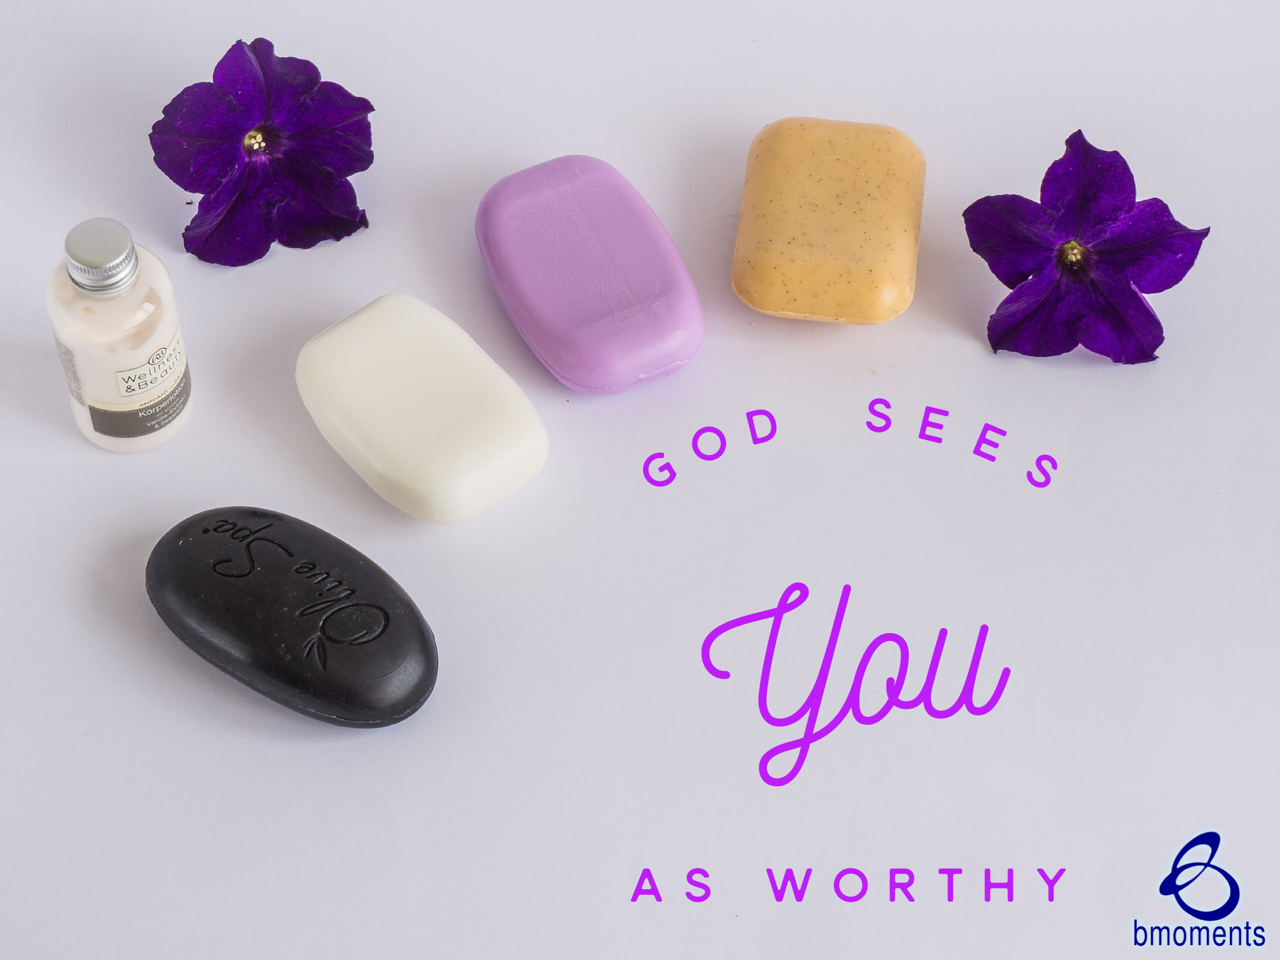 God Knows You are Clean and Worthy